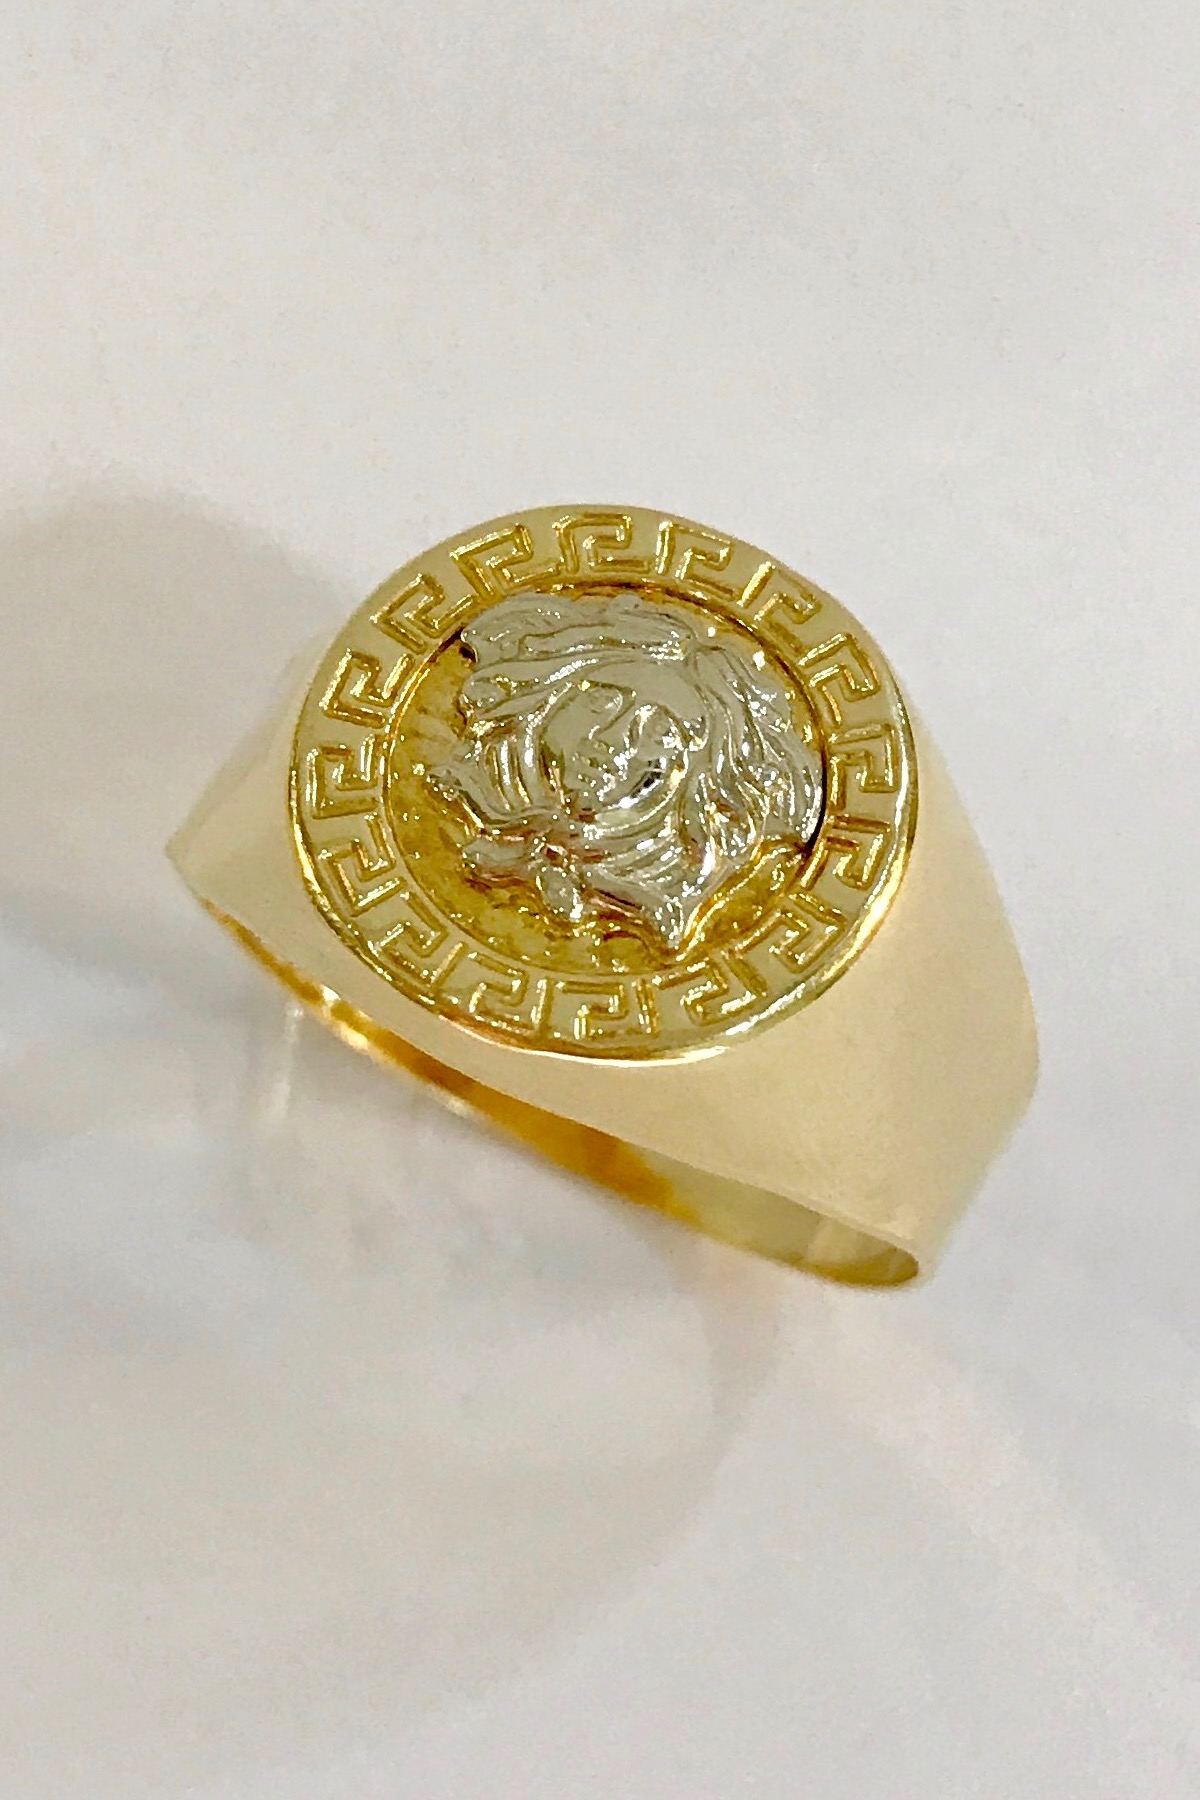 Affordable 18k Gold Mens Versace Ring JayAnn Jewelry